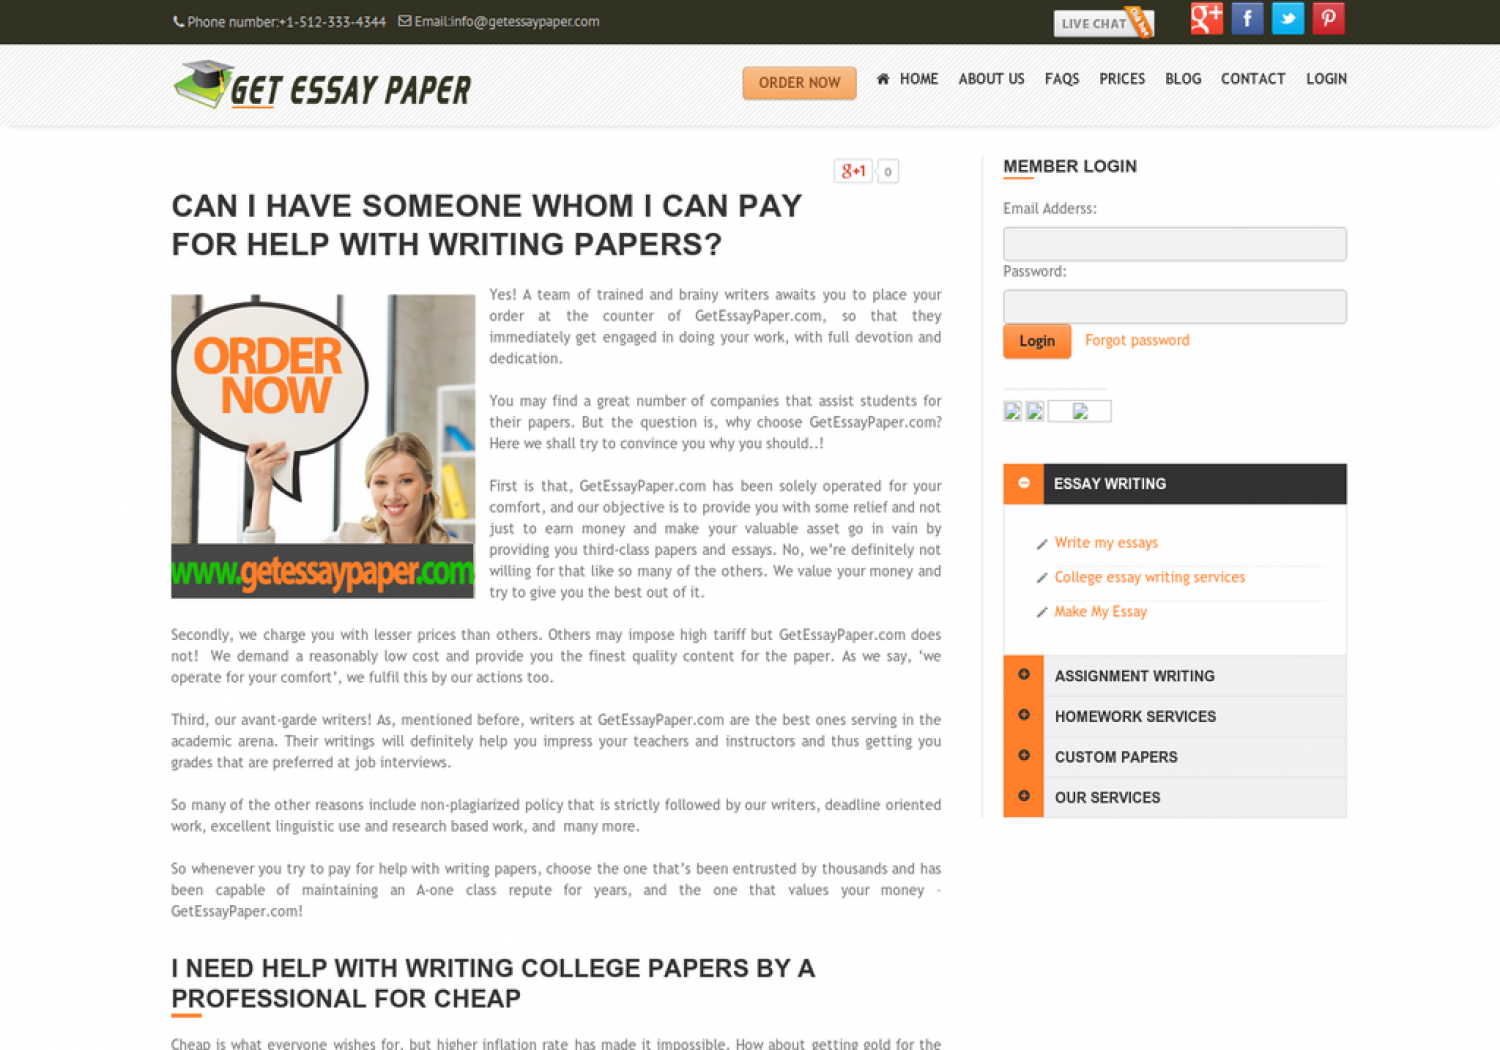 Buying essay